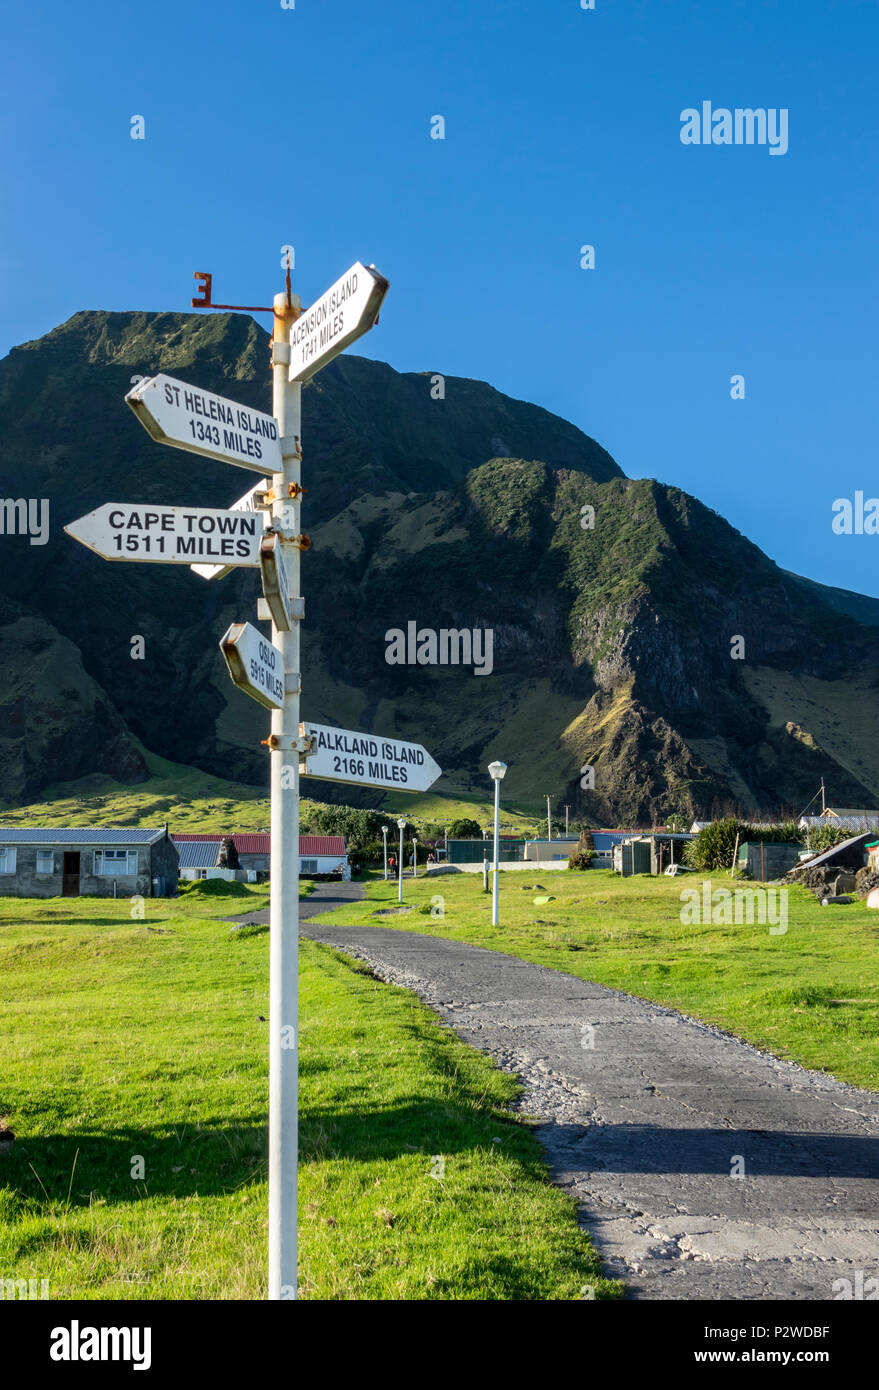 Signpost with distances to the nearest islands and cities at Tristan da Cunha, British Overseas Territories, South Atlantic Ocean - Stock Image